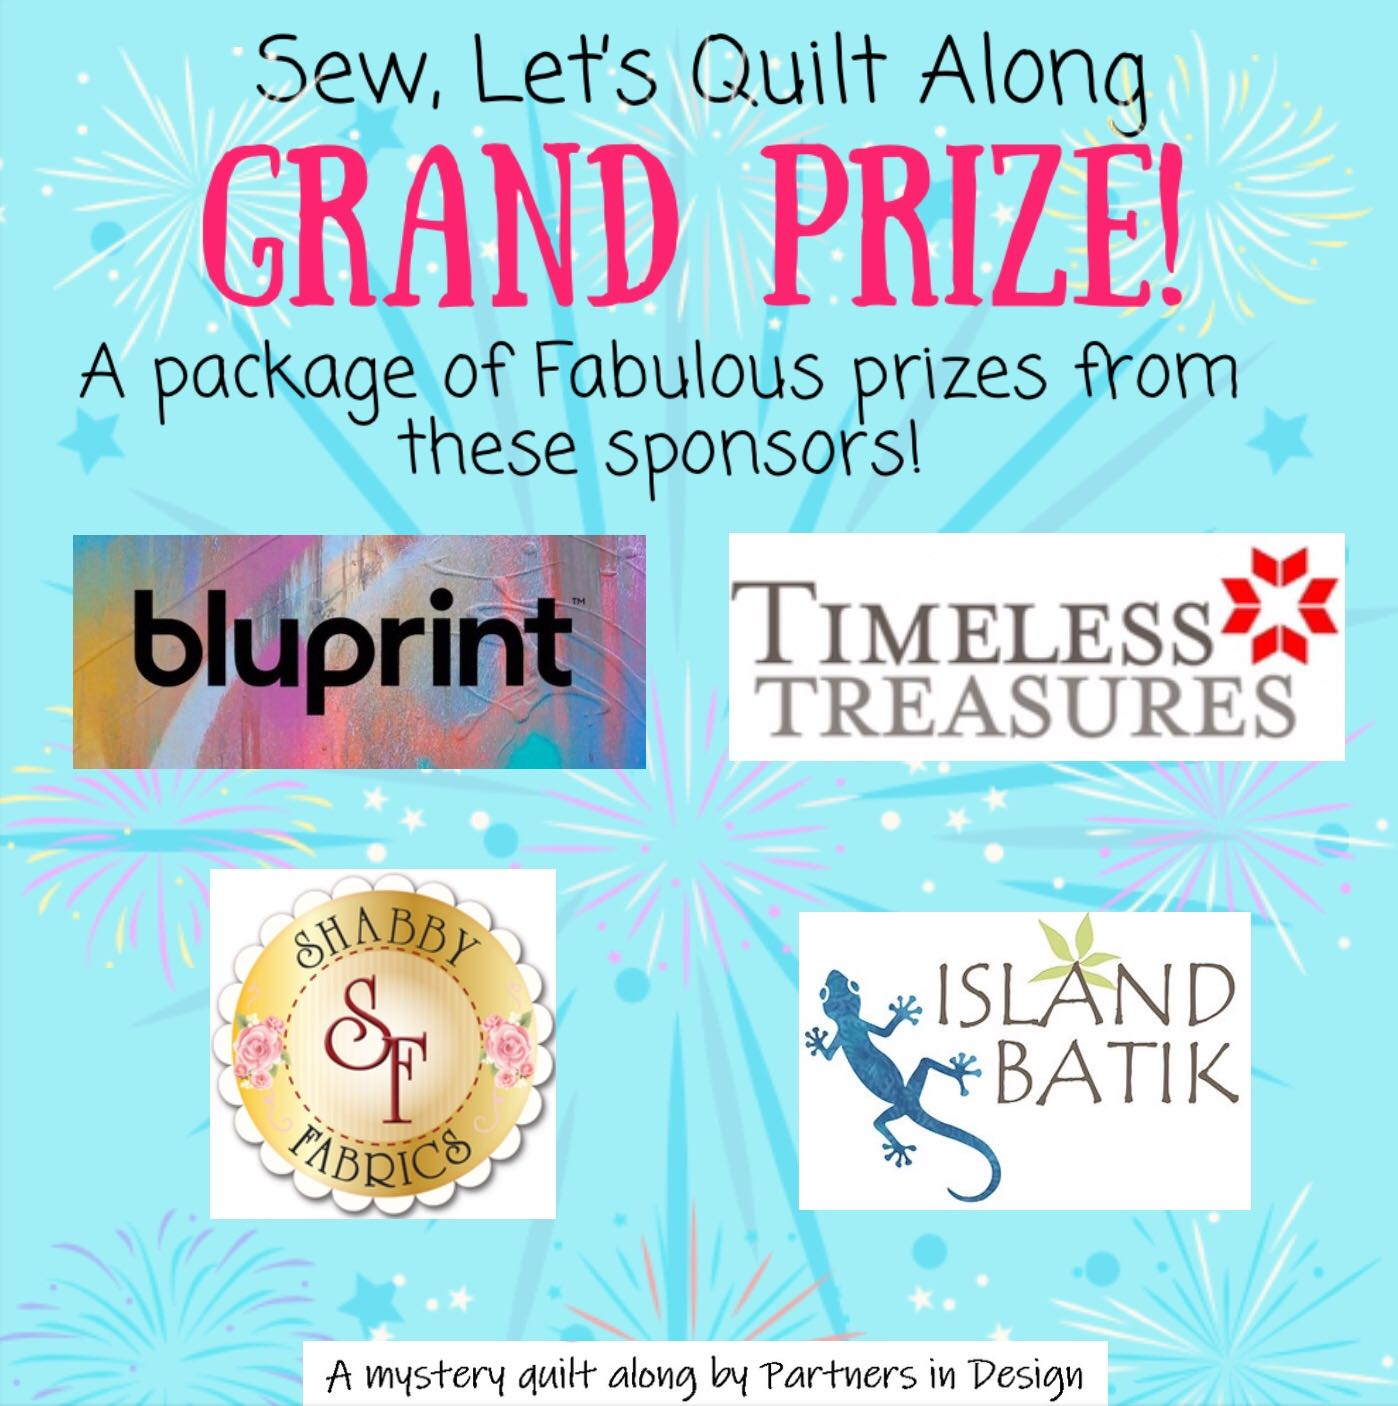 quilt along grand prize sponsors